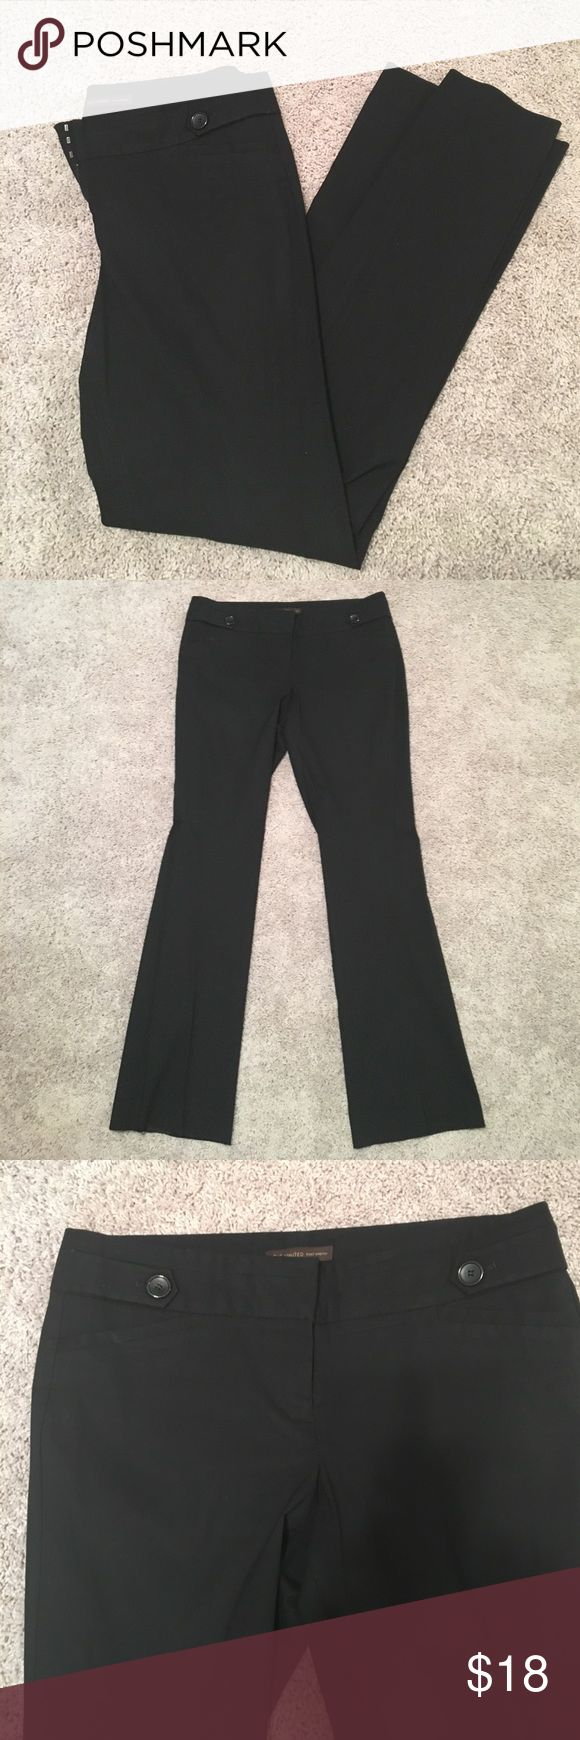 The Limited Exact Stretch dress pants EUC dress/work pant from The Limited. Size 14 Long in Black. Great pants to wear to work; lots of stretch and don't wrinkle throughout the day. Have the same pair for sale in Grey & same size. Bundle for a 10% discount! The Limited Pants Trousers